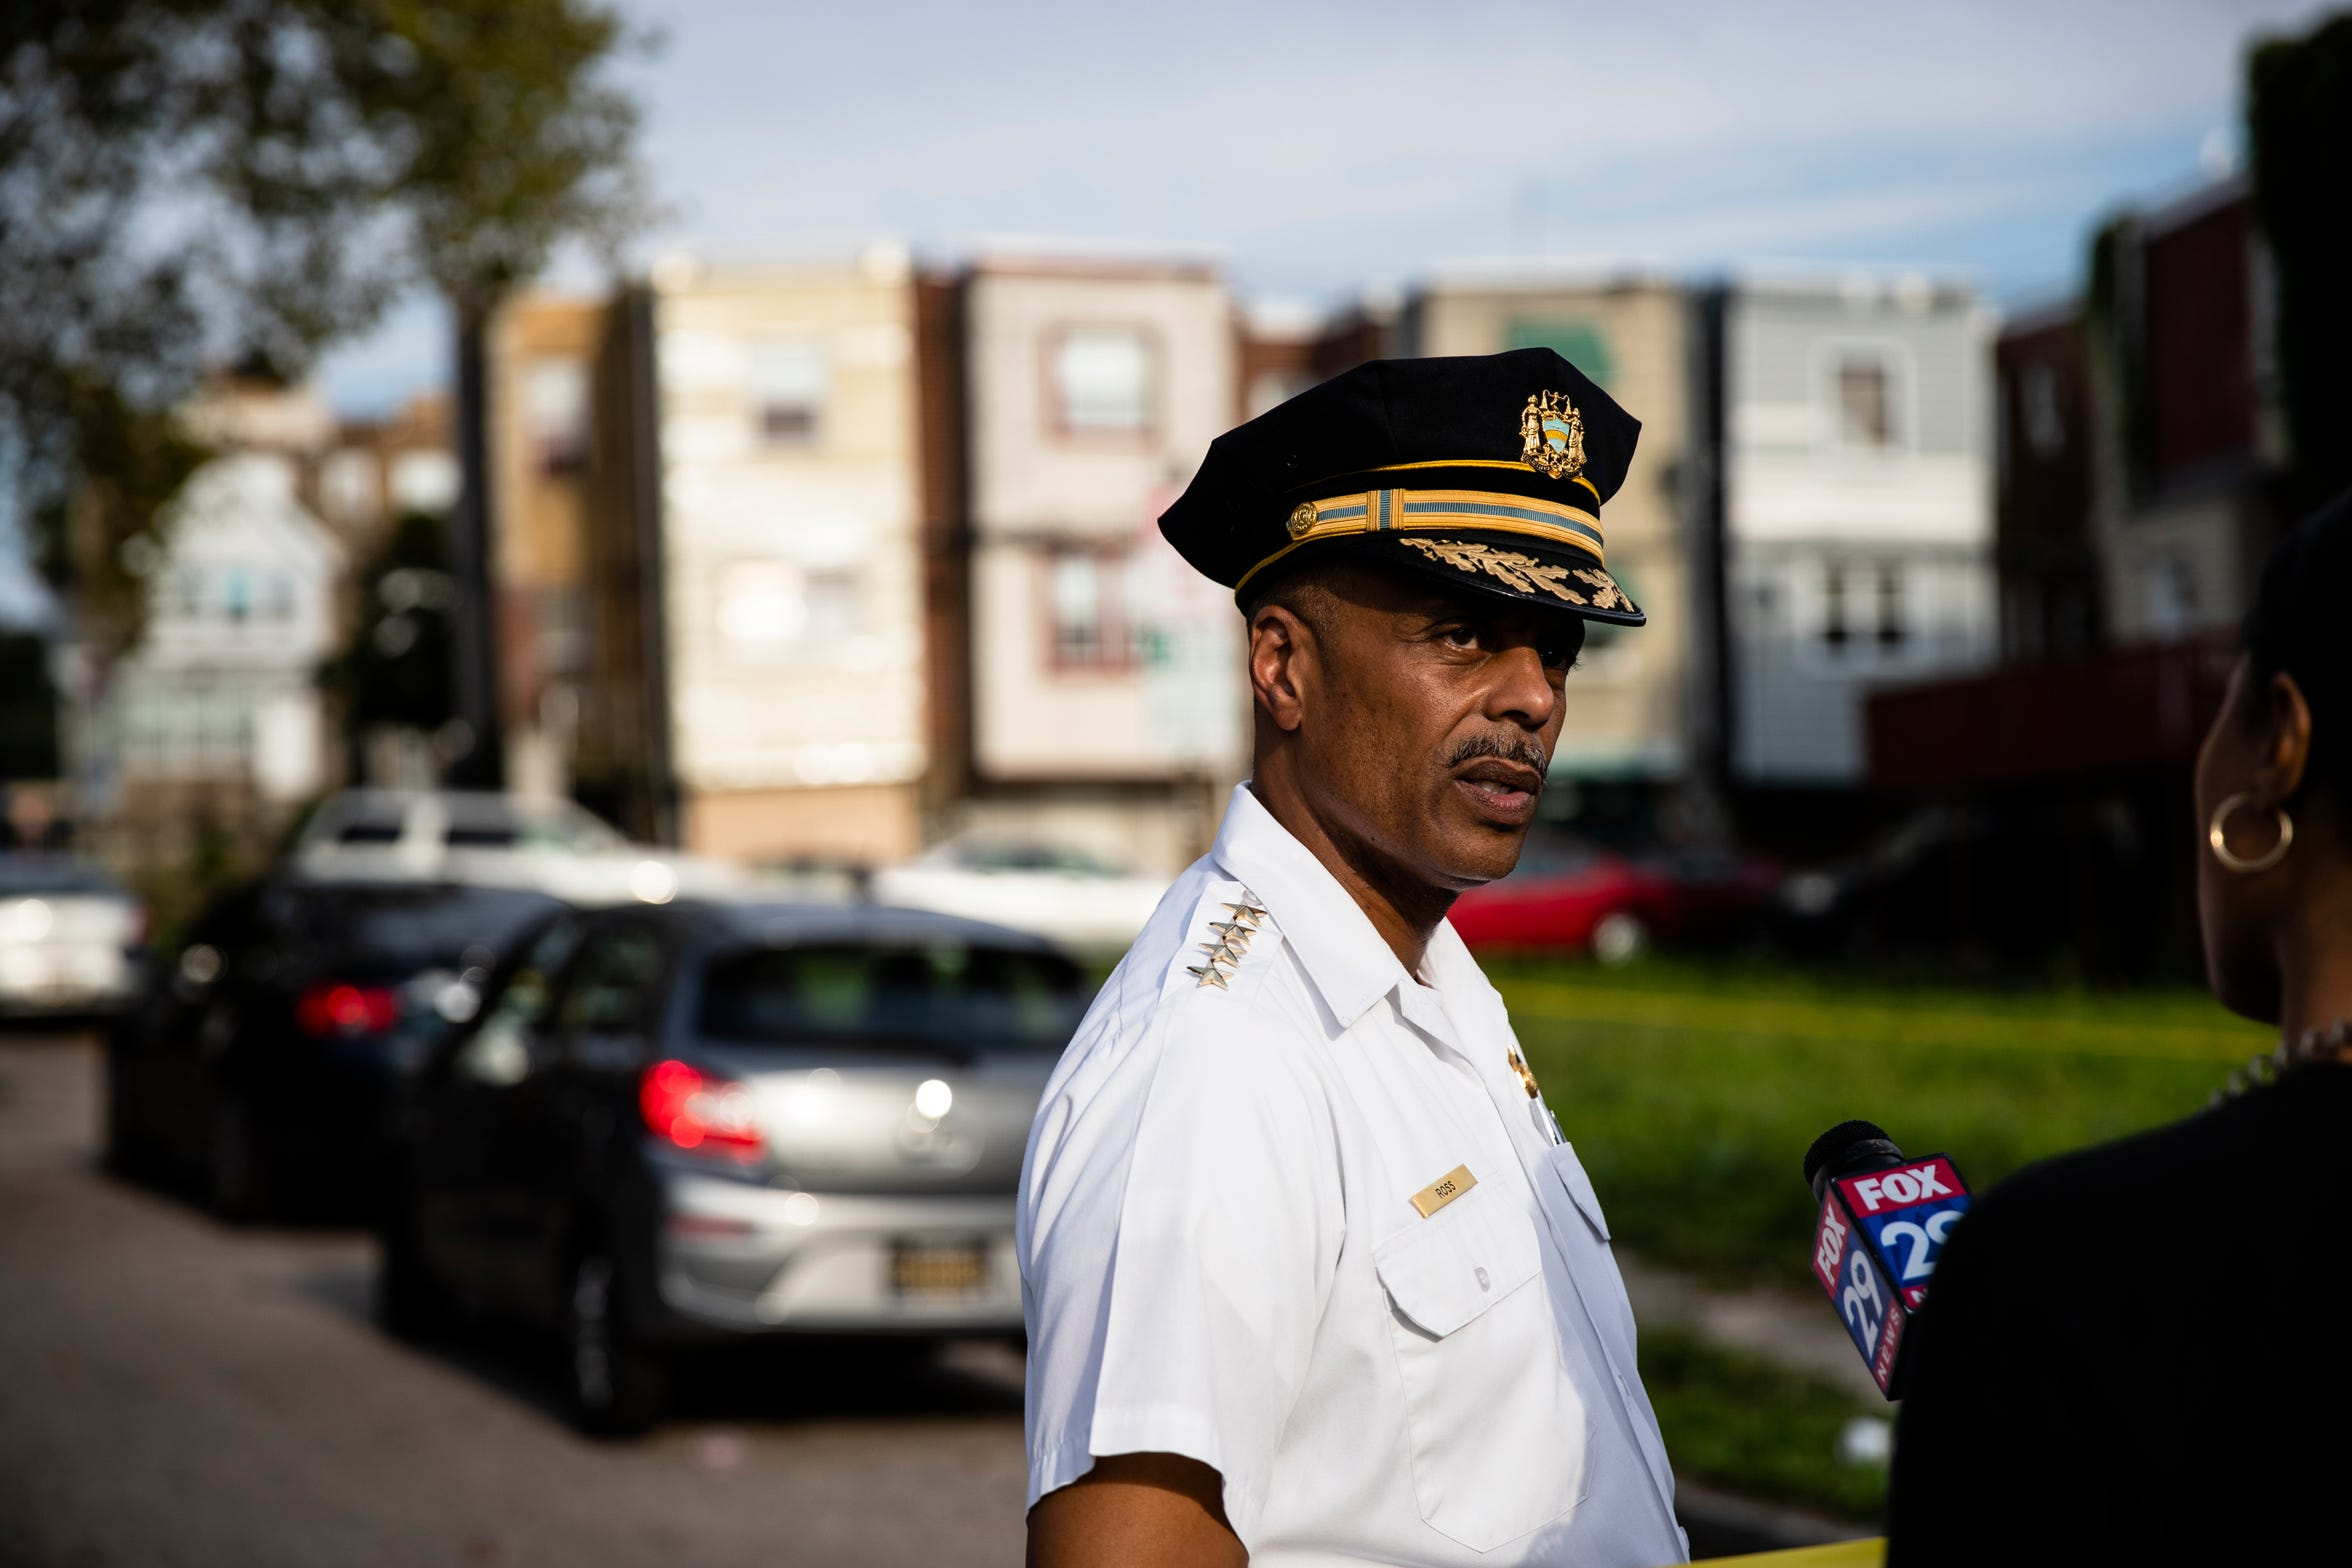 Philadelphia Police Commissioner Richard Ross speaks with members of the media at the scene of a shooting in the Ogontz section of Philadelphia, Thursday, Aug. 15, 2019. (AP Photo/Matt Rourke)